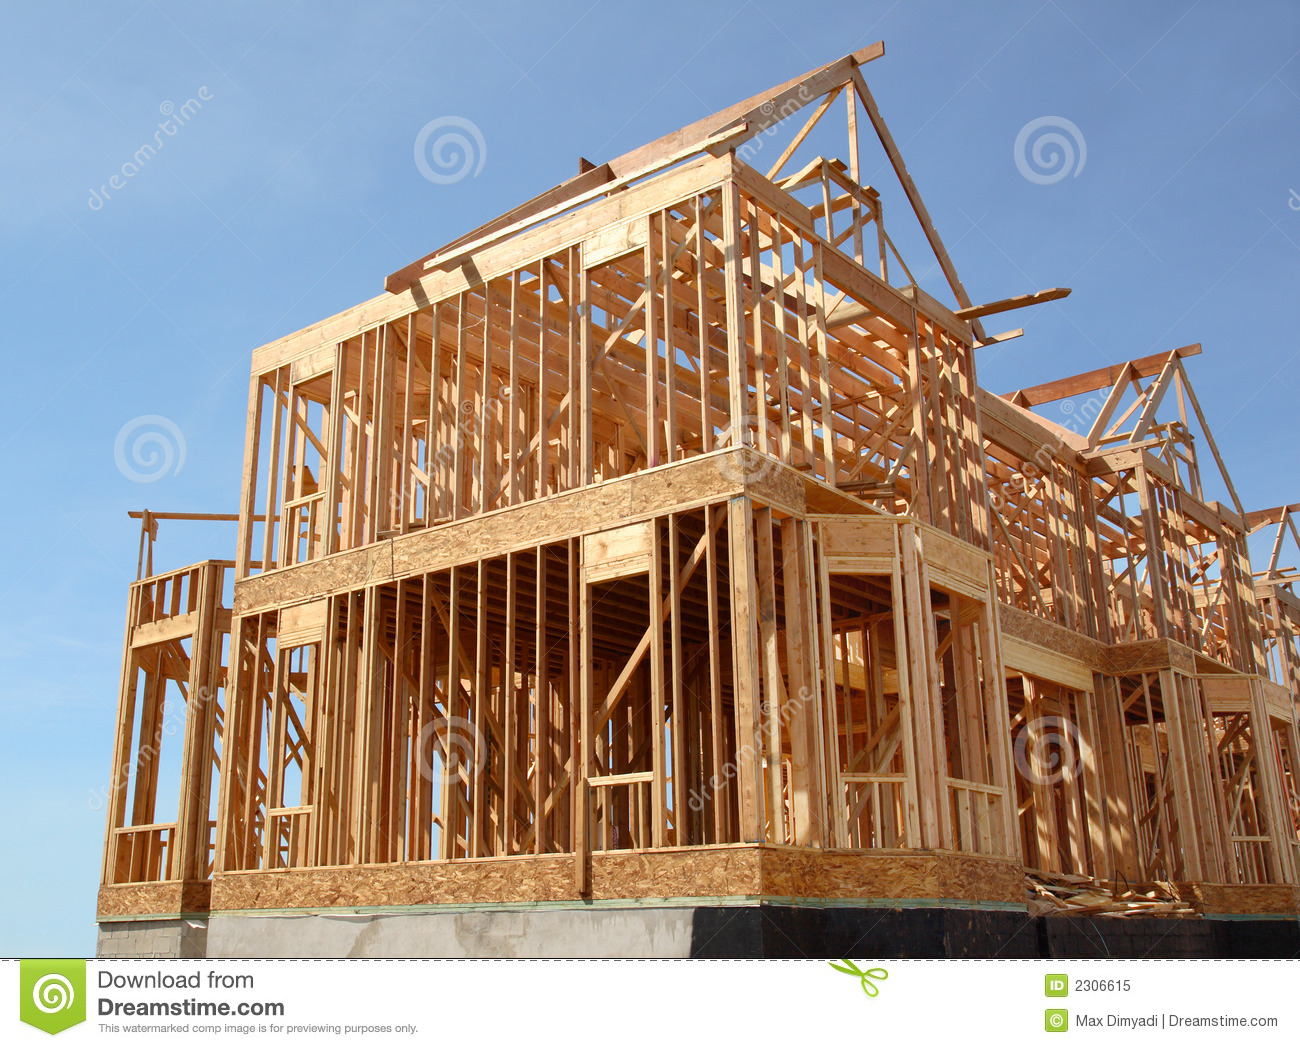 House Under Construction Royalty Free Stock Photo.